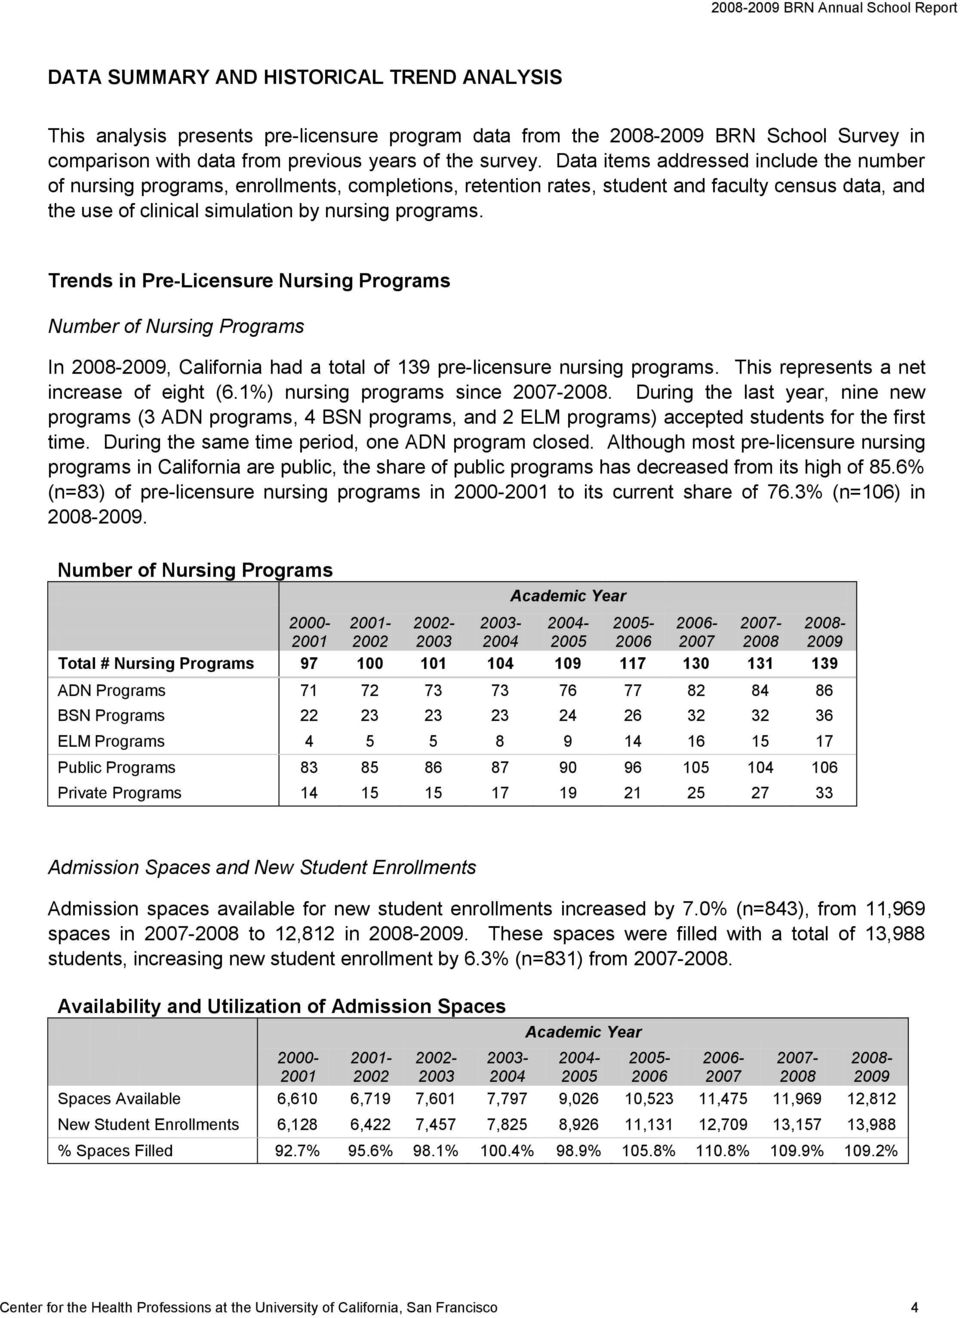 Trends in Pre-Licensure Nursing Programs Number of Nursing Programs In 2008-2009, California had a total of 139 pre-licensure nursing programs. This represents a net increase of eight (6.